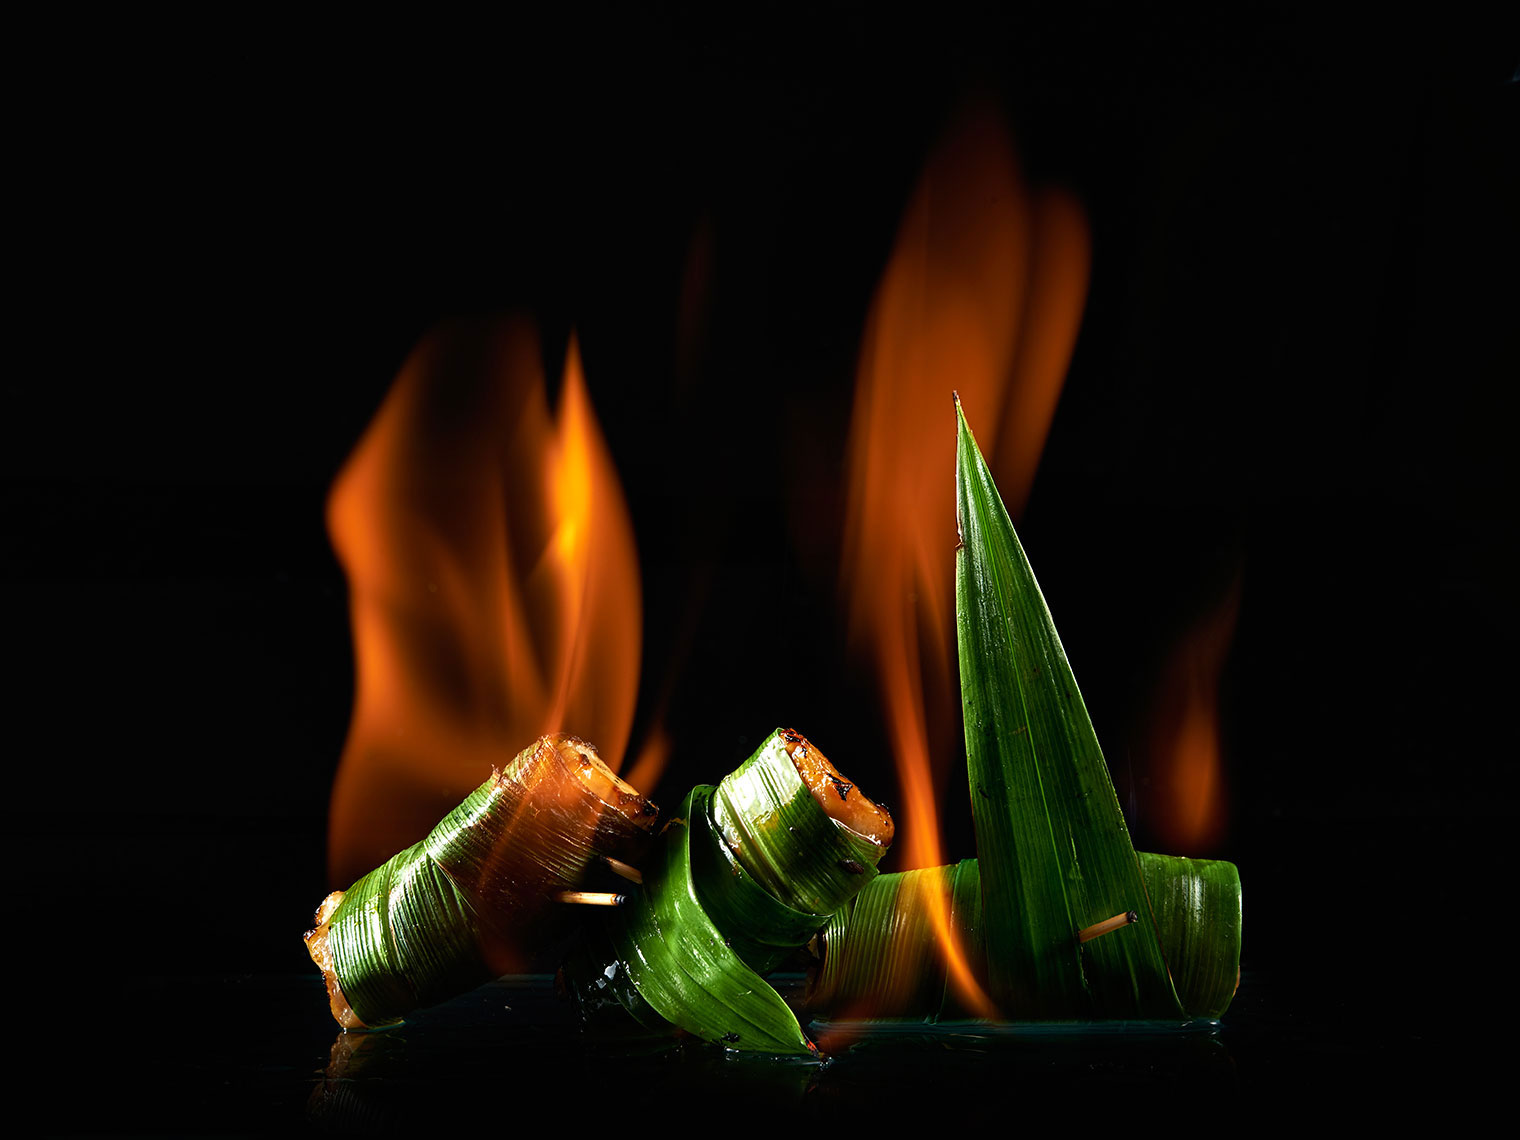 010_F105_food_shot_bananaleaf_chicken_onfire_BITE_Studio_Wing_Chan